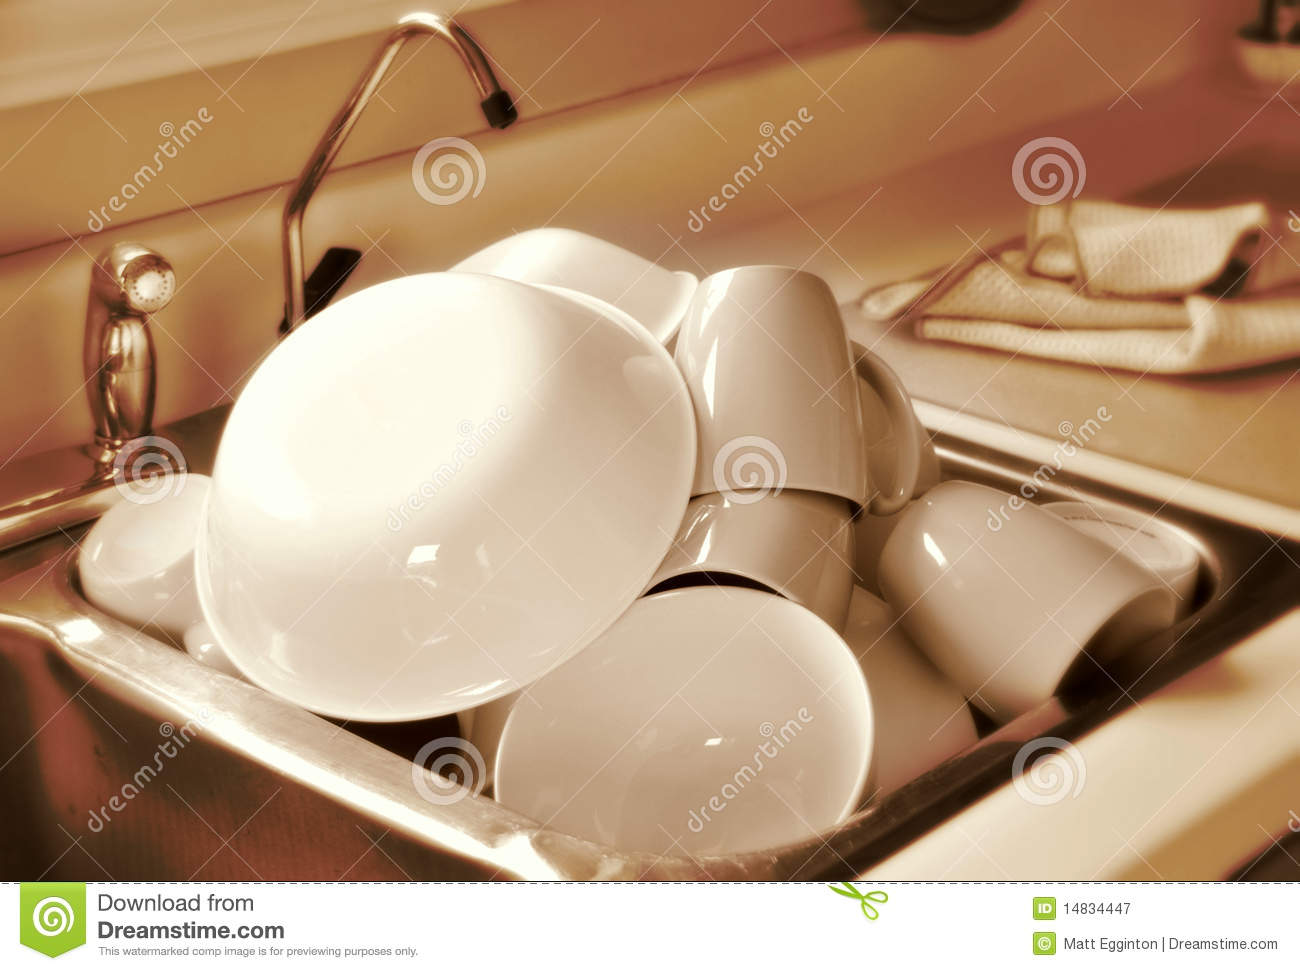 Clean Dishes In Sink Stock Image Image Of Dishware Shiny